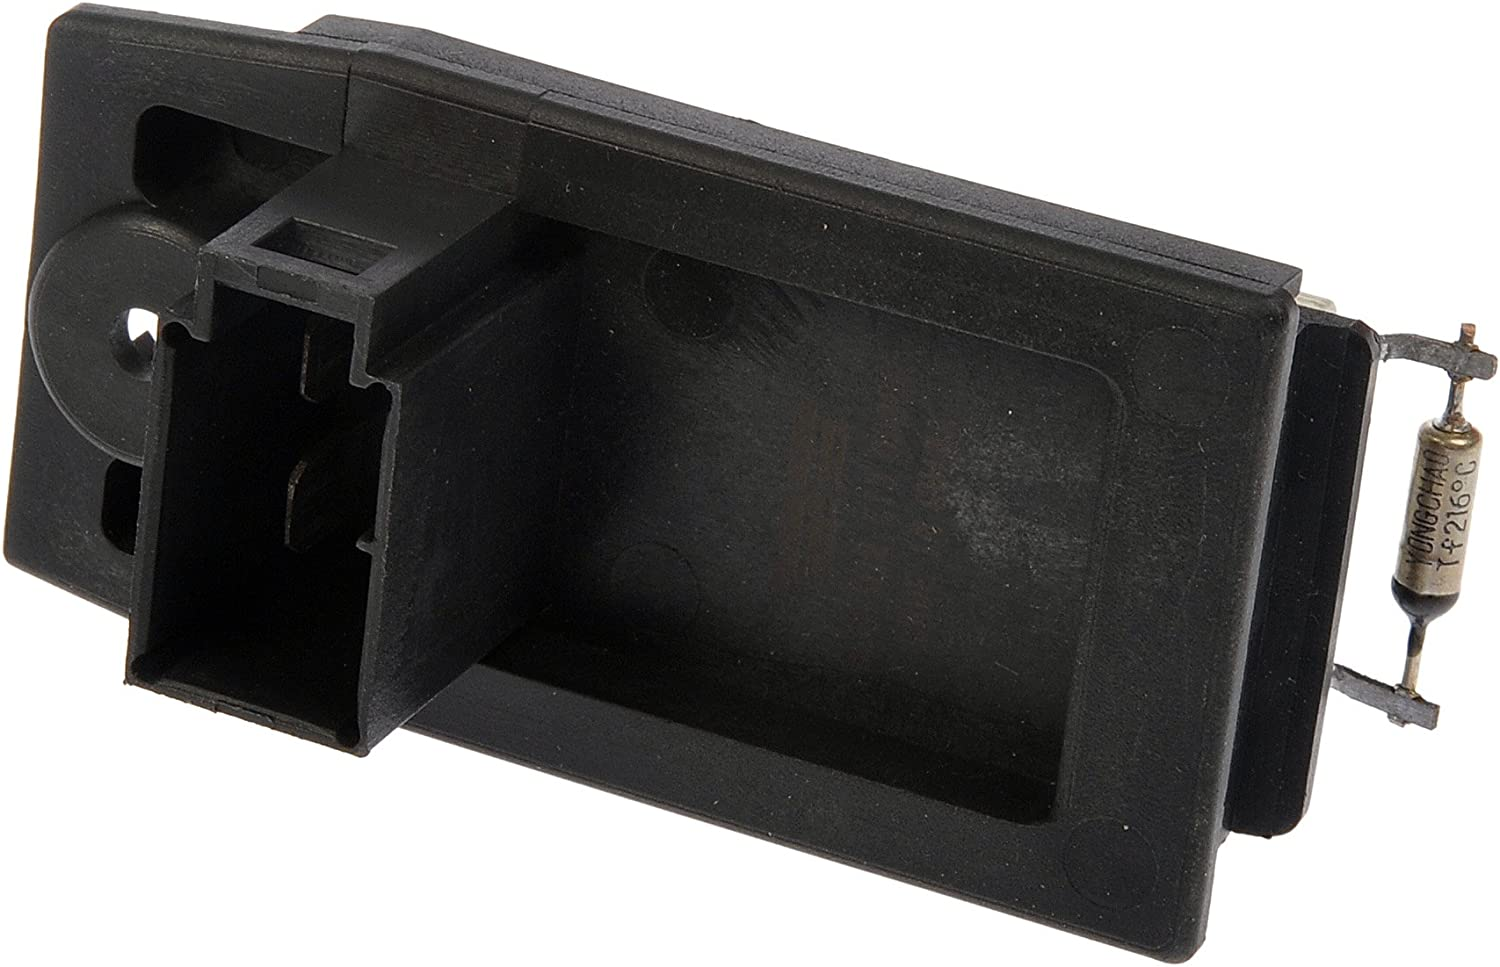 Dorman 973-012 Blower Motor Resistor for Ford/Mercury